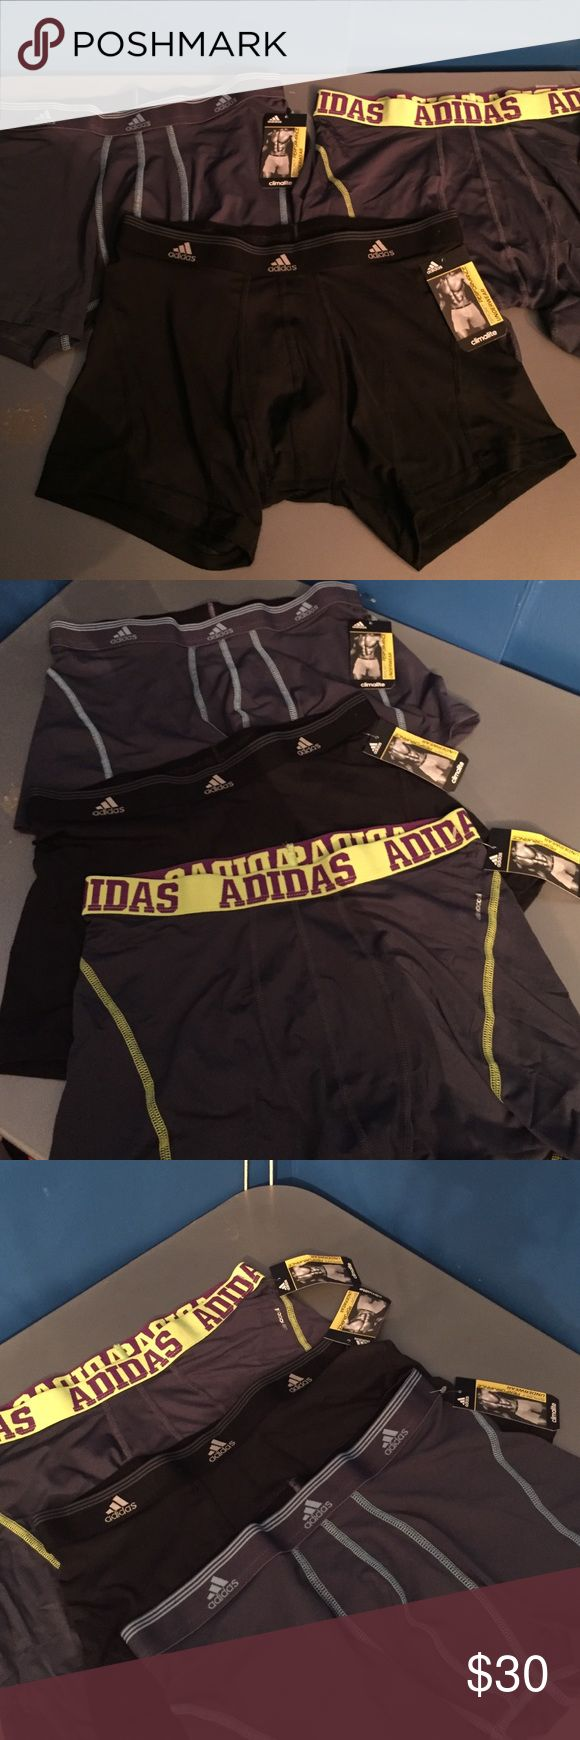 Nwt men's size medium performance boxers bundle Nwt performance boxers underwear set of 3 adidas all tags still on dark colors two performance trunks and one performance boxer Adidas Underwear & Socks Boxers